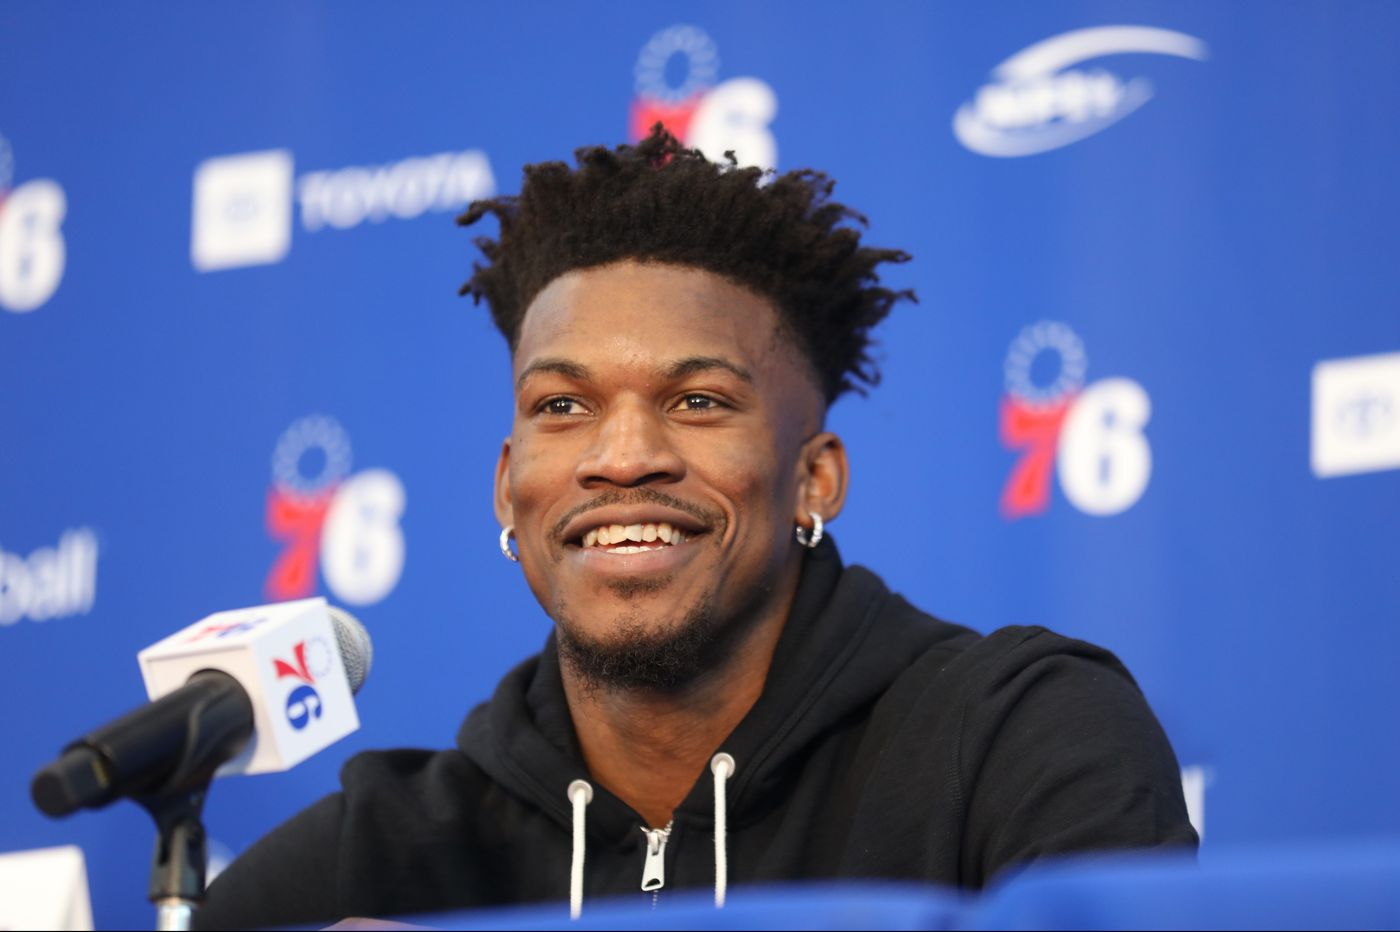 Jimmy Butler wants to help the Sixers compete for a title: 'All I've ever wanted to do is win'